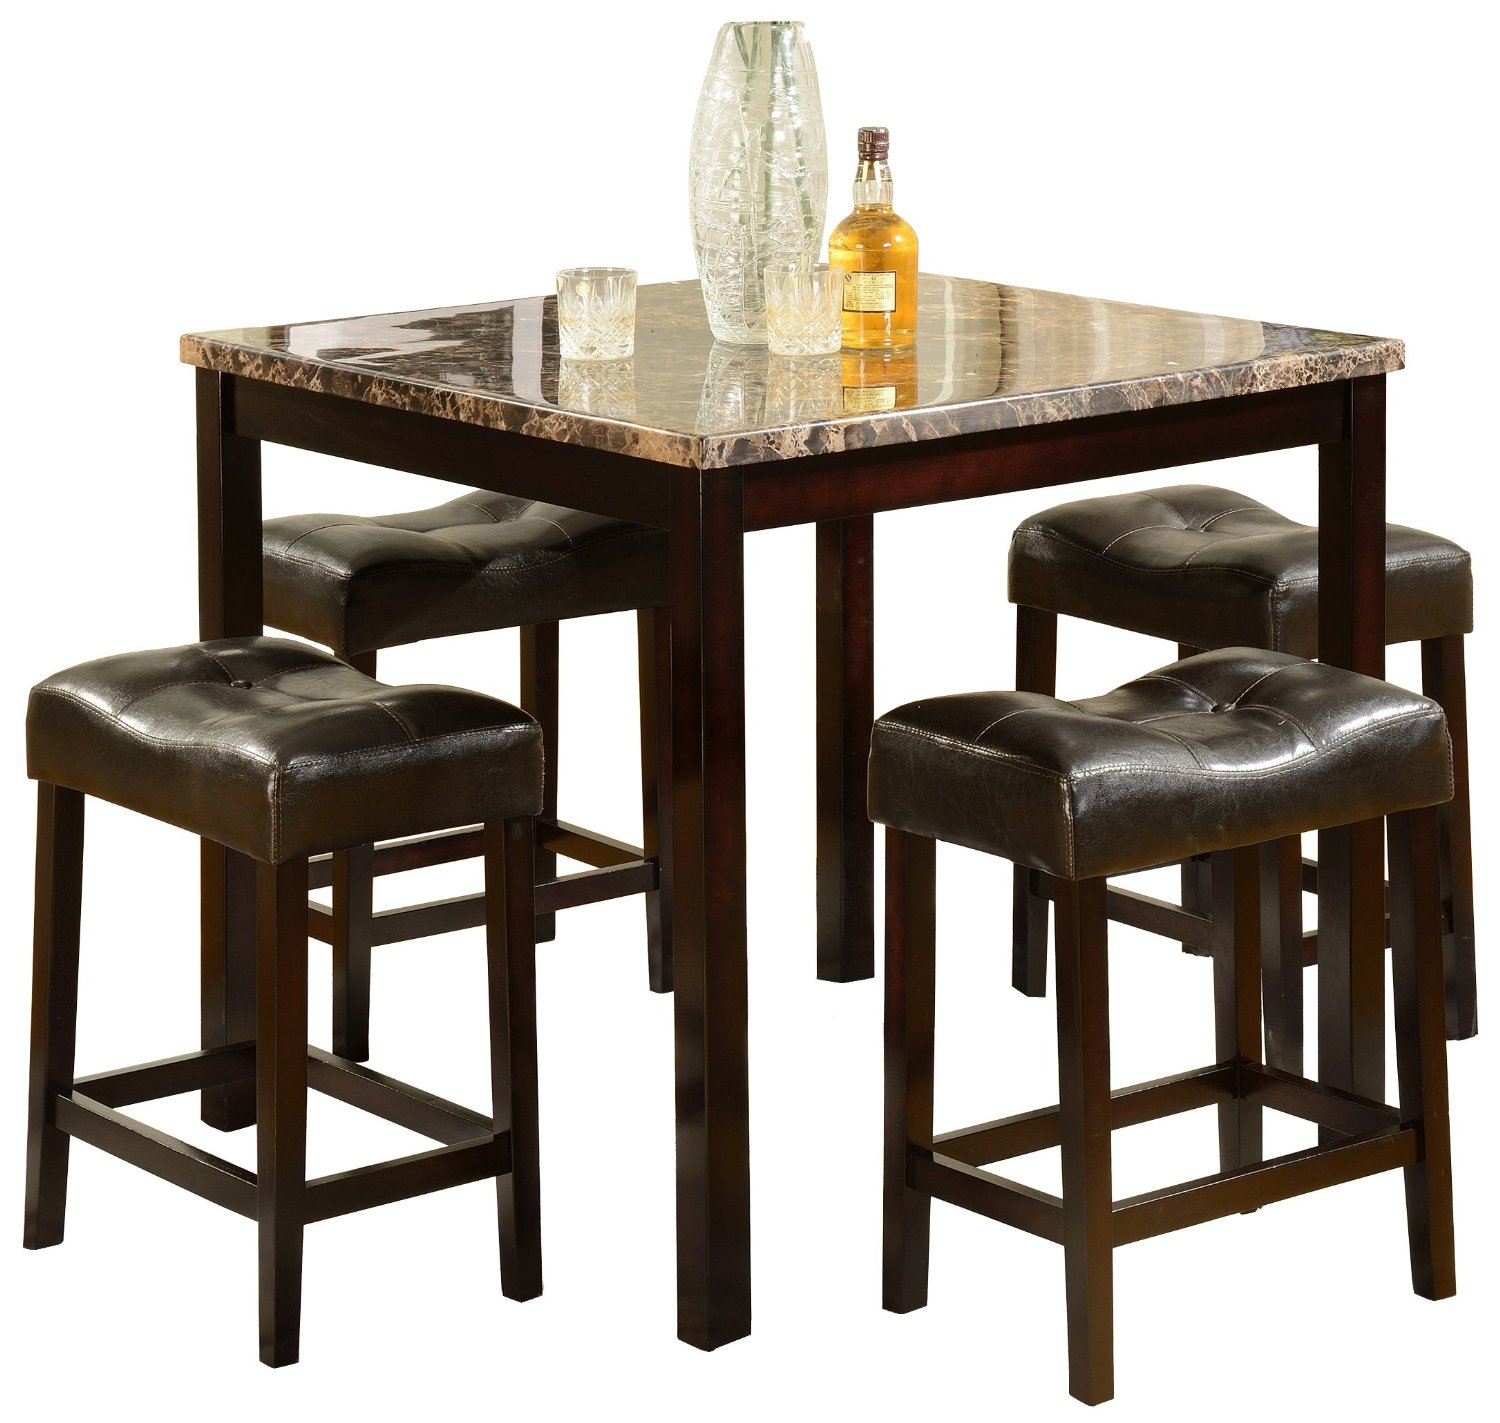 Kitchen Tables With Stools: High Top Kitchen Table Sets